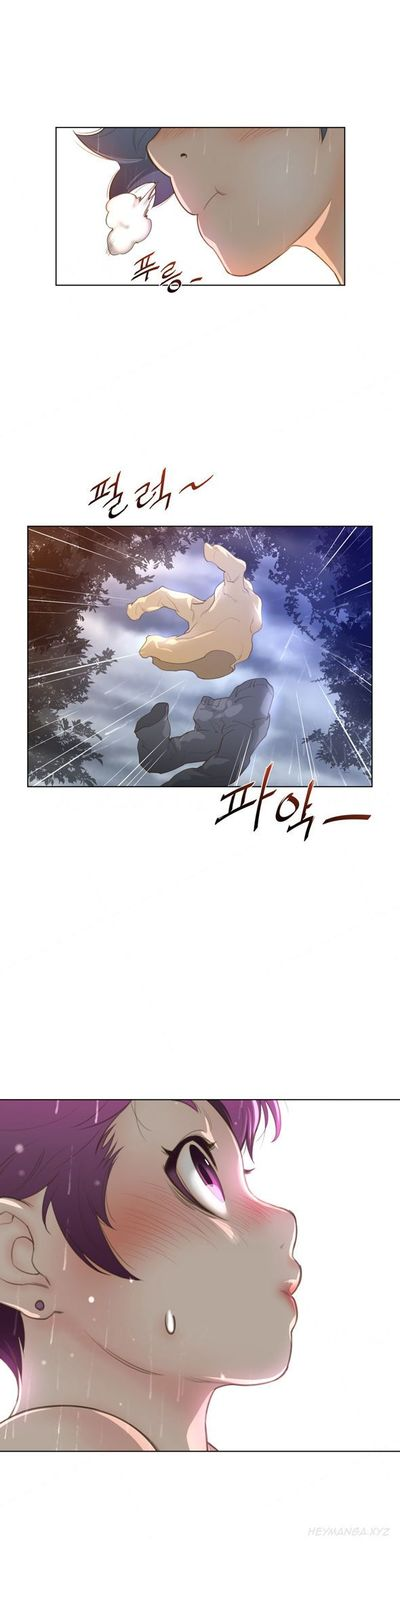 Perfect Half Ch.1-27  (Ongoing) - part 22